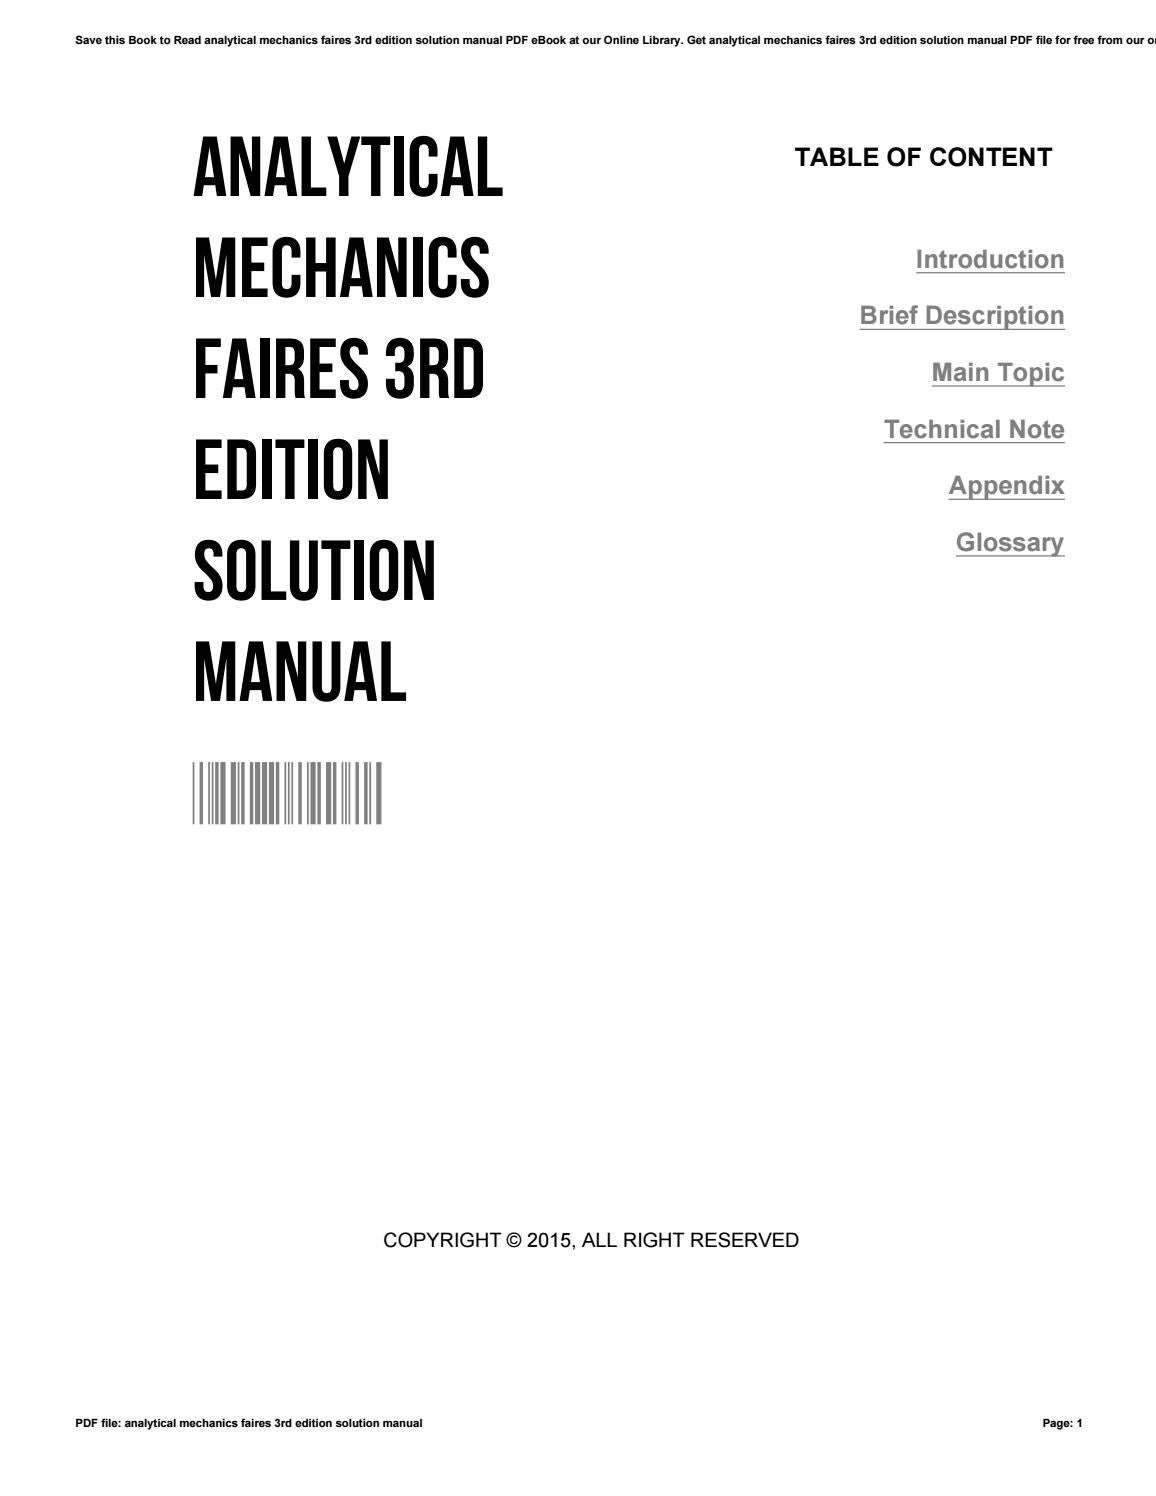 Analytical mechanics faires 3rd edition solution manual by